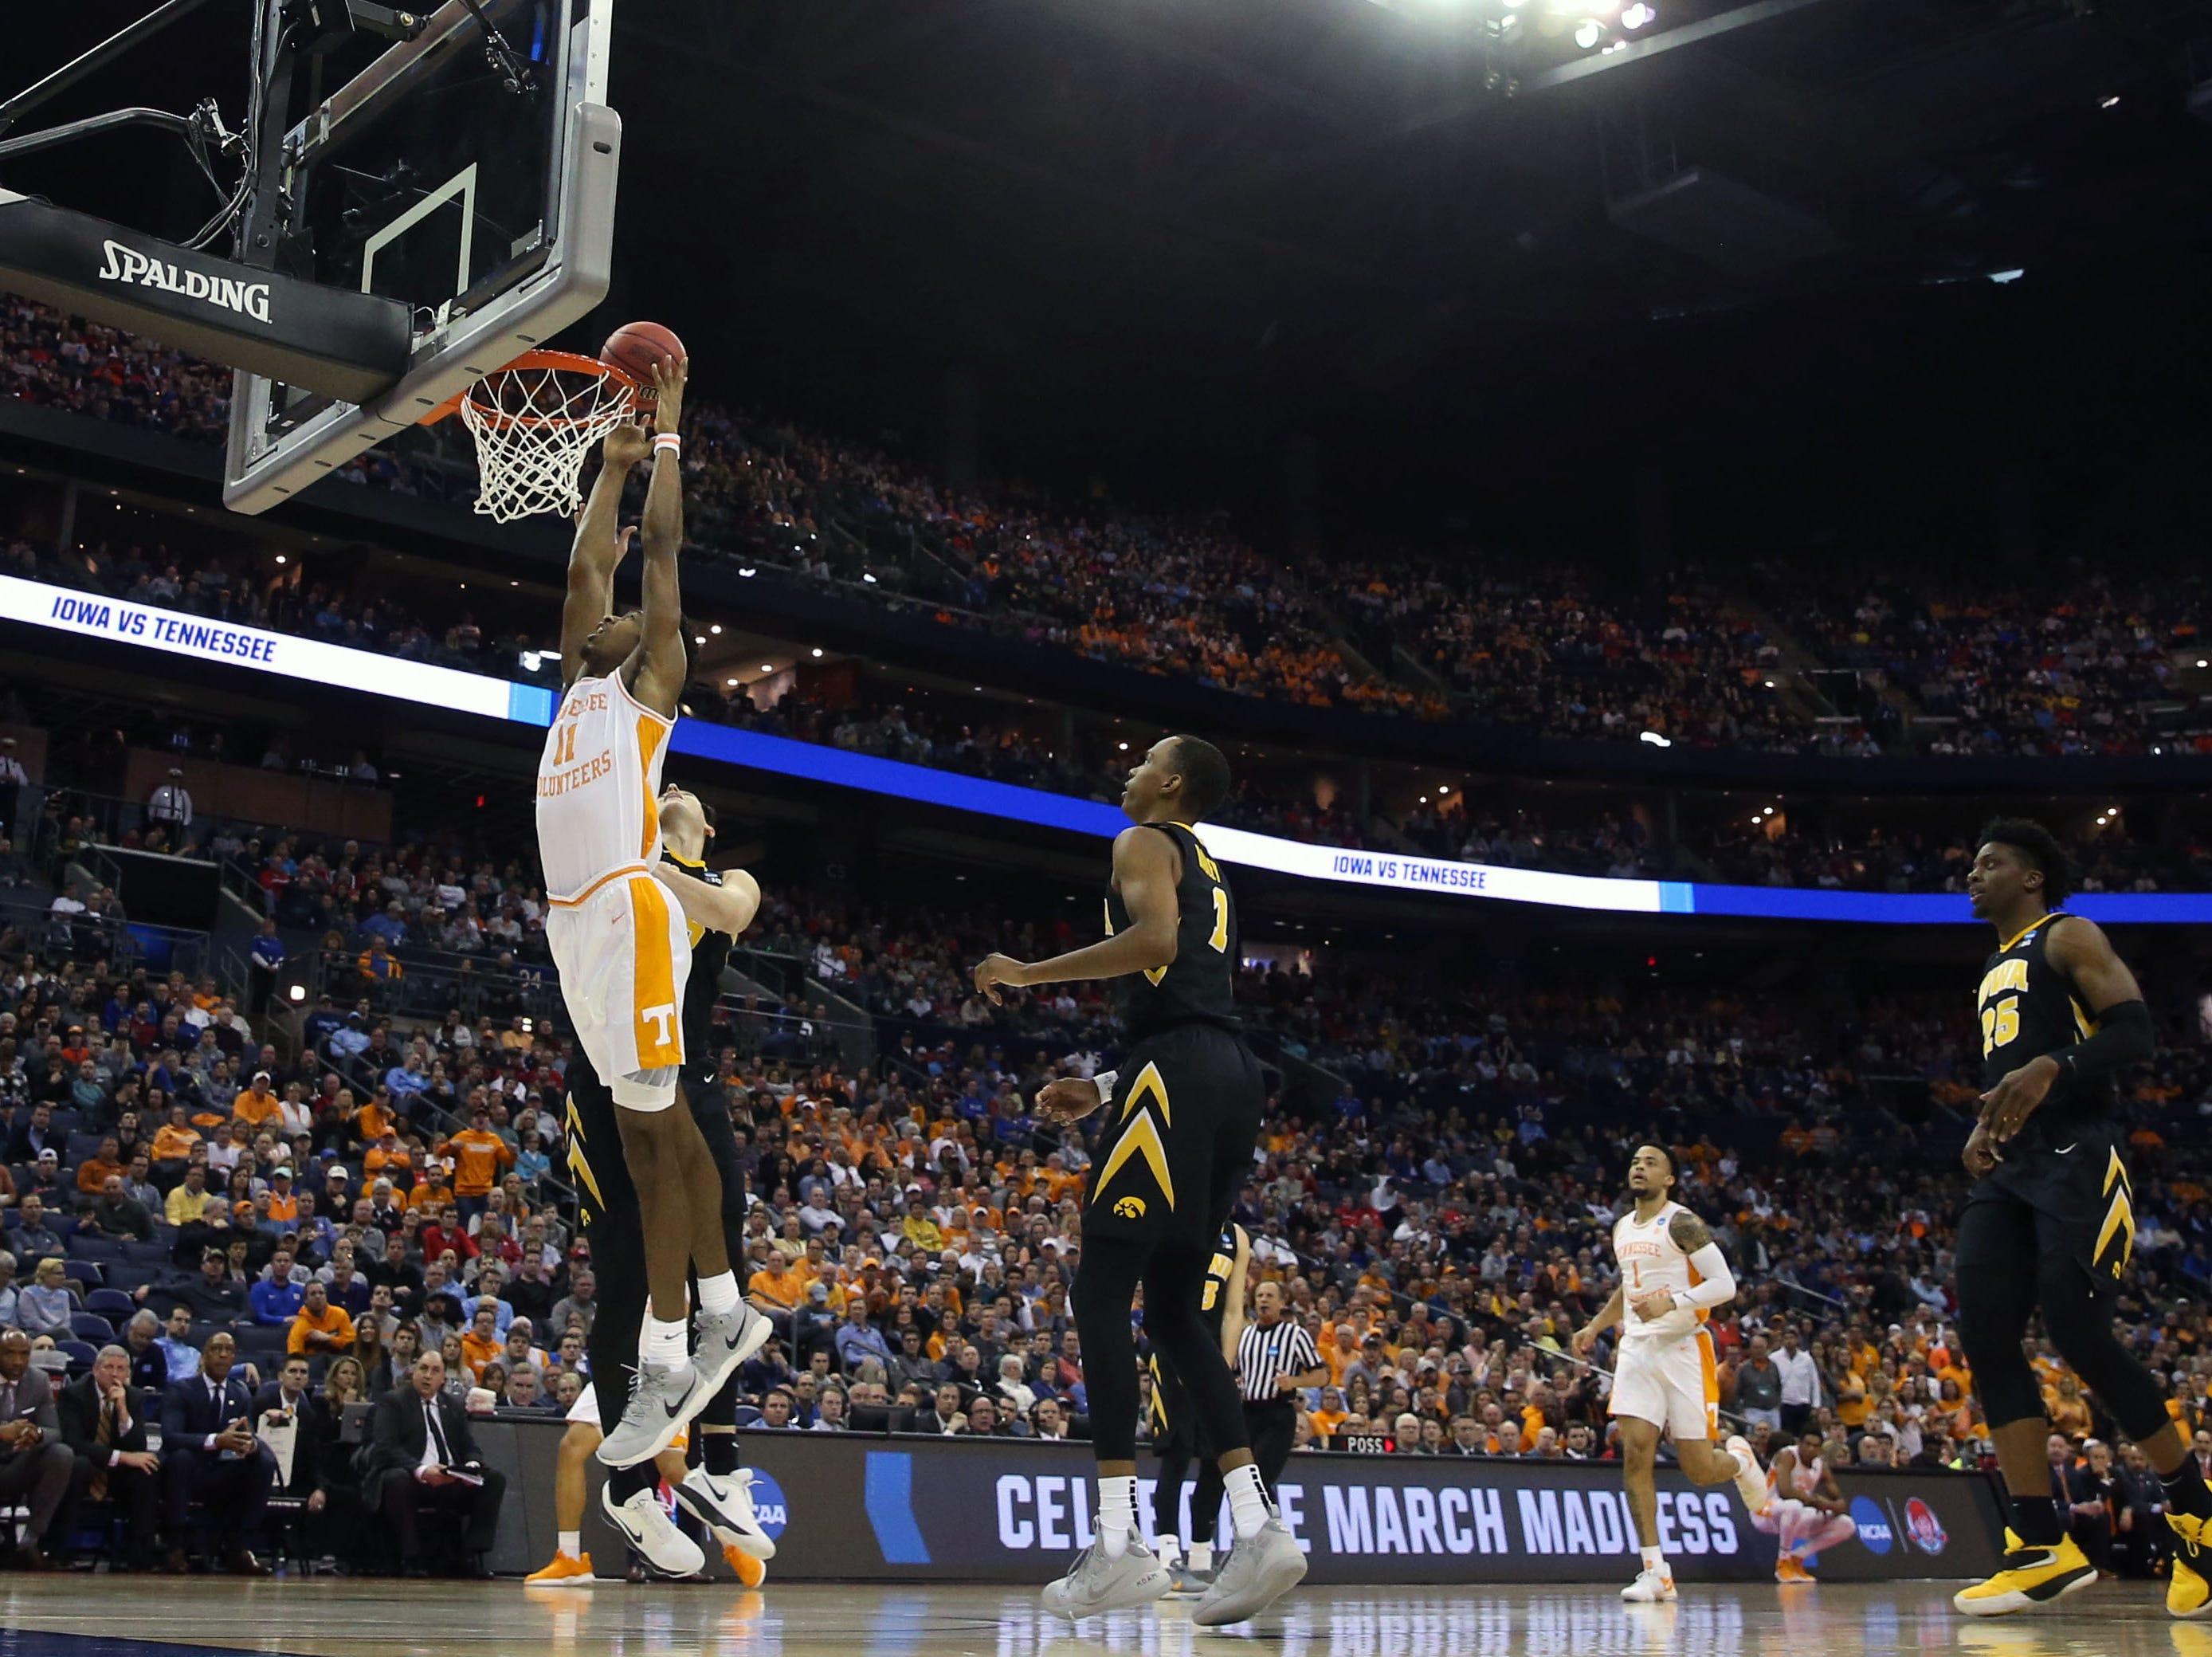 Tennessee Volunteers forward Kyle Alexander (11) dunks the ball in the first half against the Iowa Hawkeyes in the second round of the 2019 NCAA Tournament at Nationwide Arena.